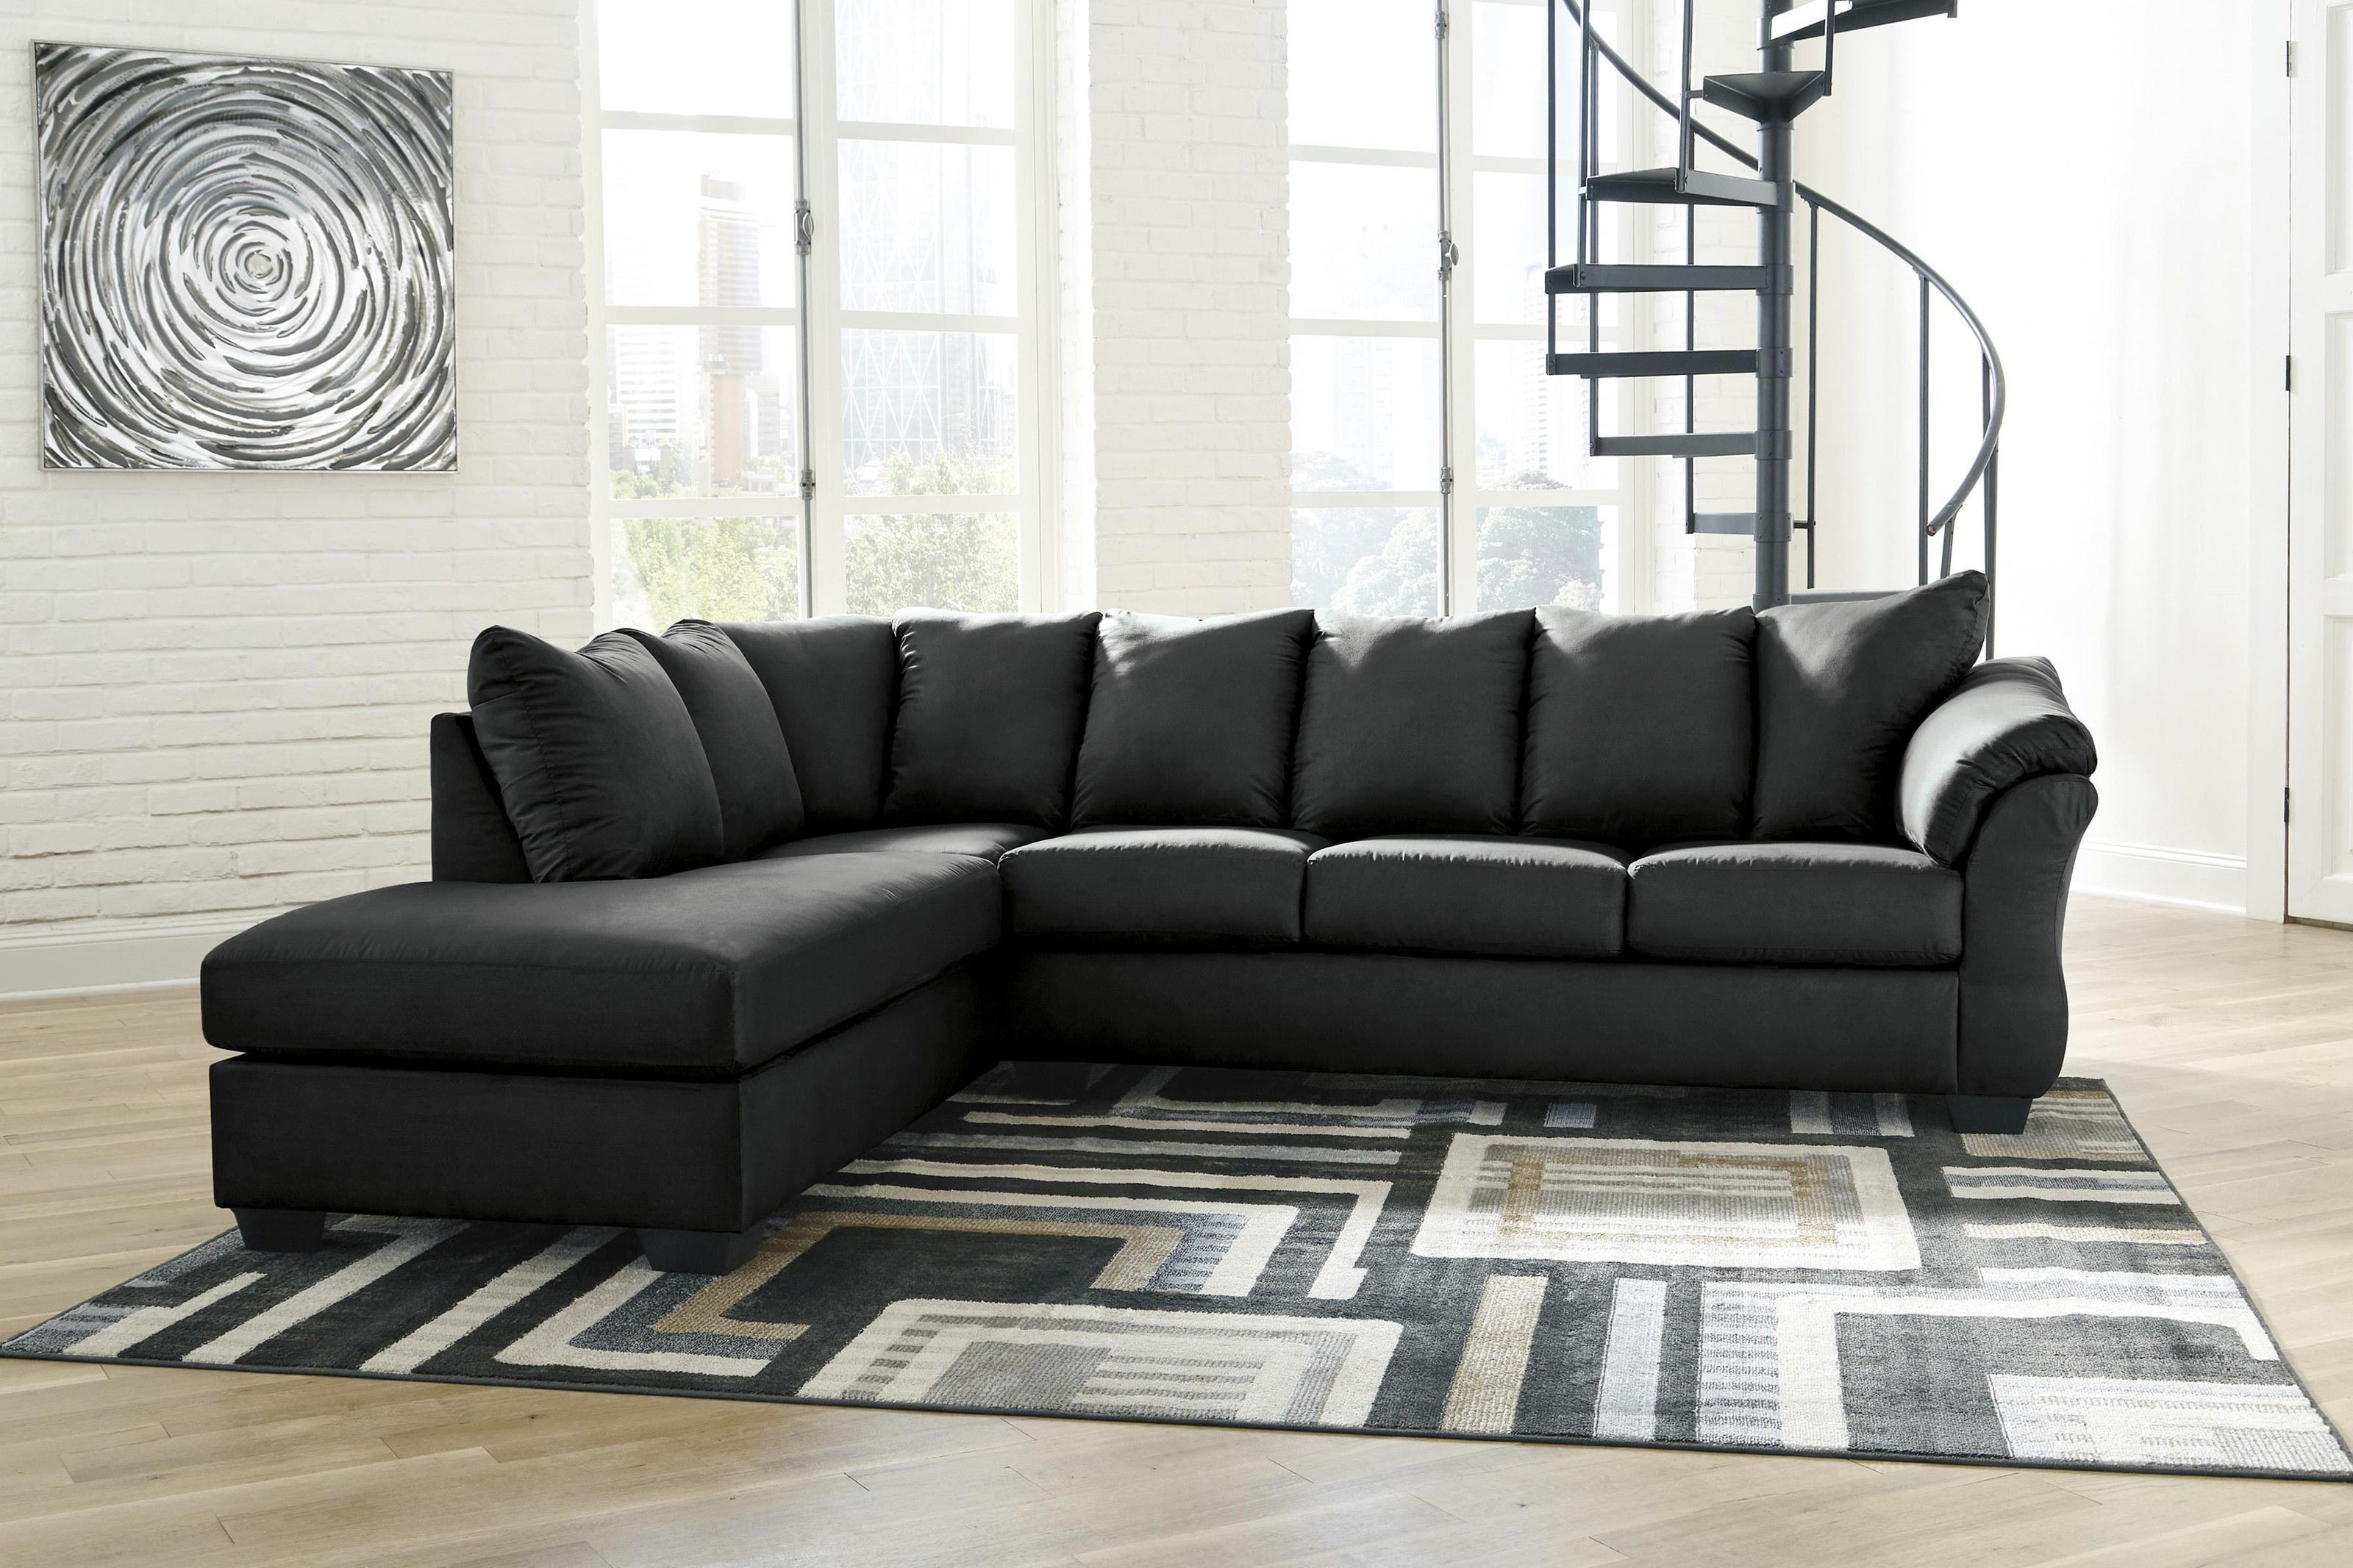 Darcy - Black 2 PC Sectional and Chair Set by Signature Design by Ashley at Sam Levitz Outlet